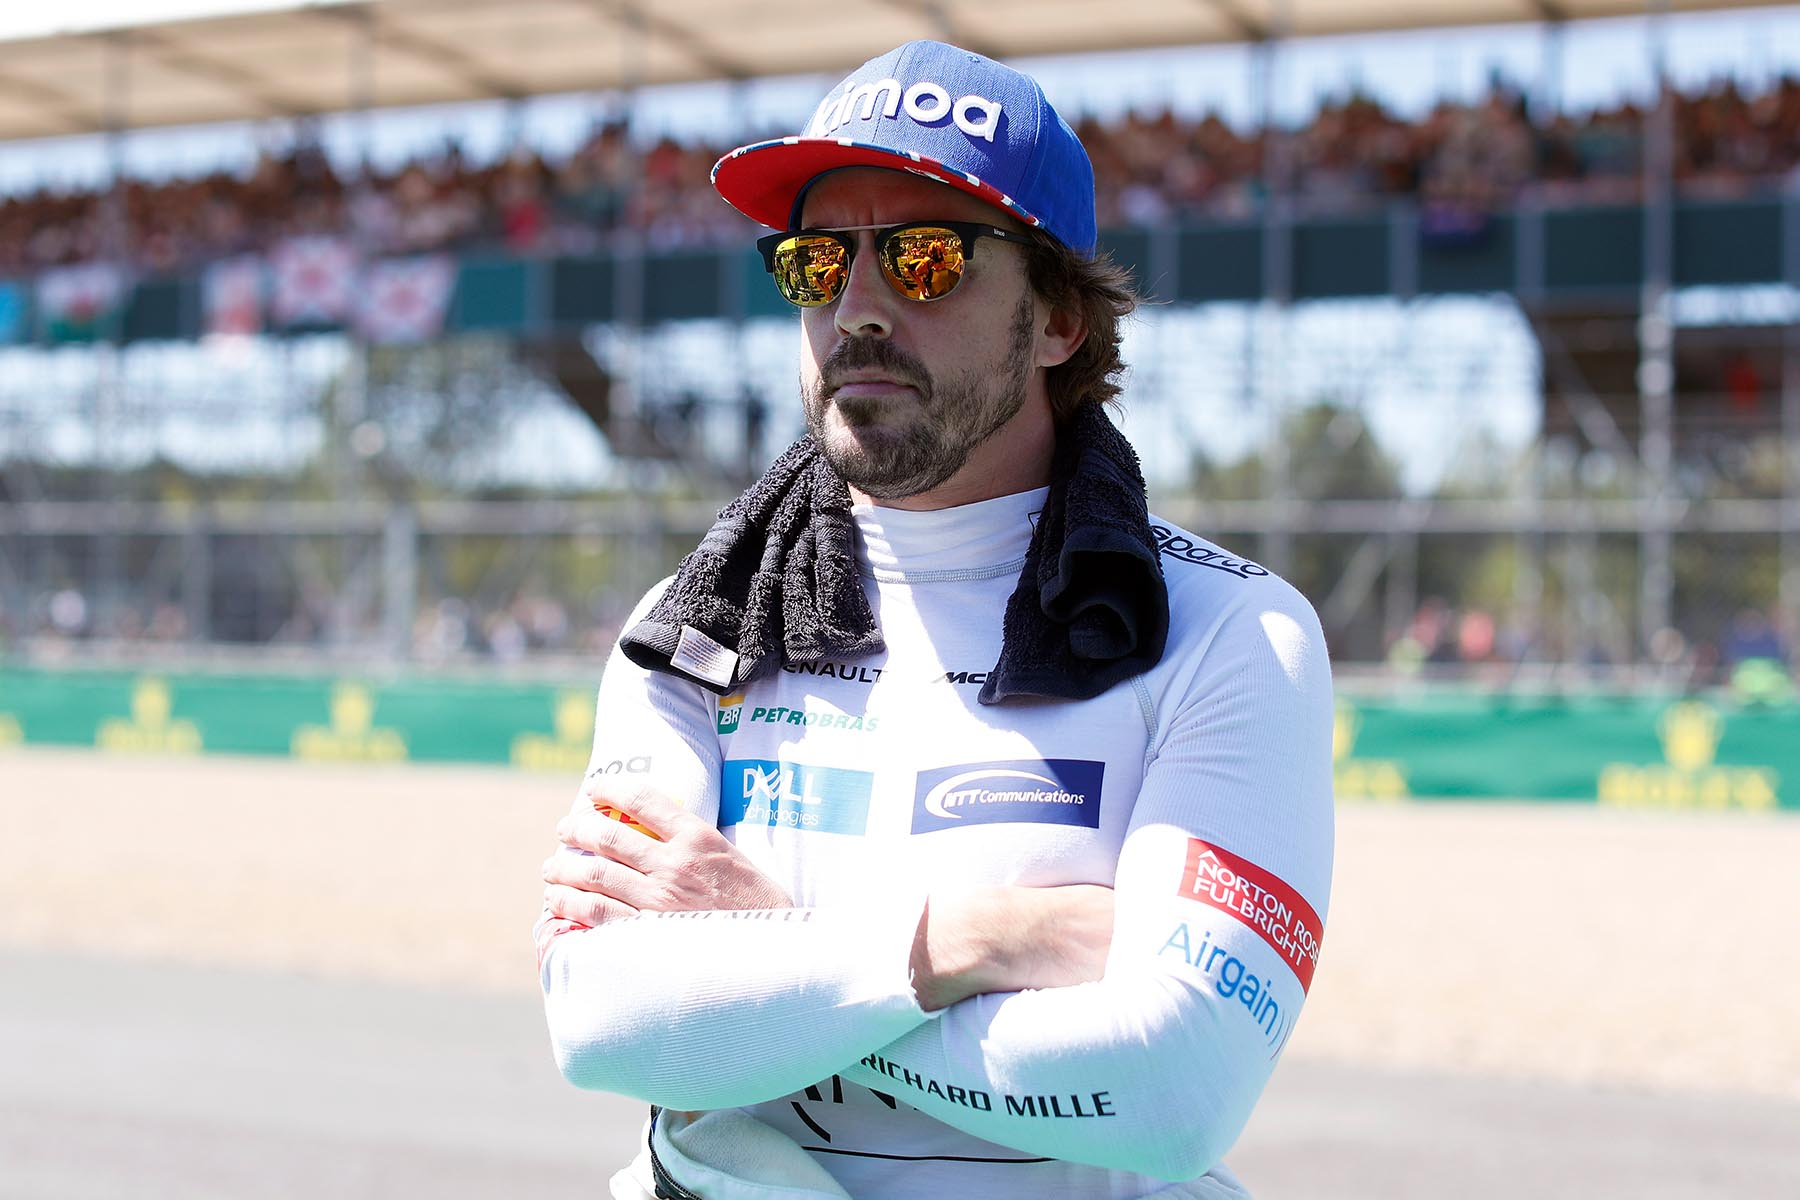 Fernando Alonso at the 2018 British Grand Prix.